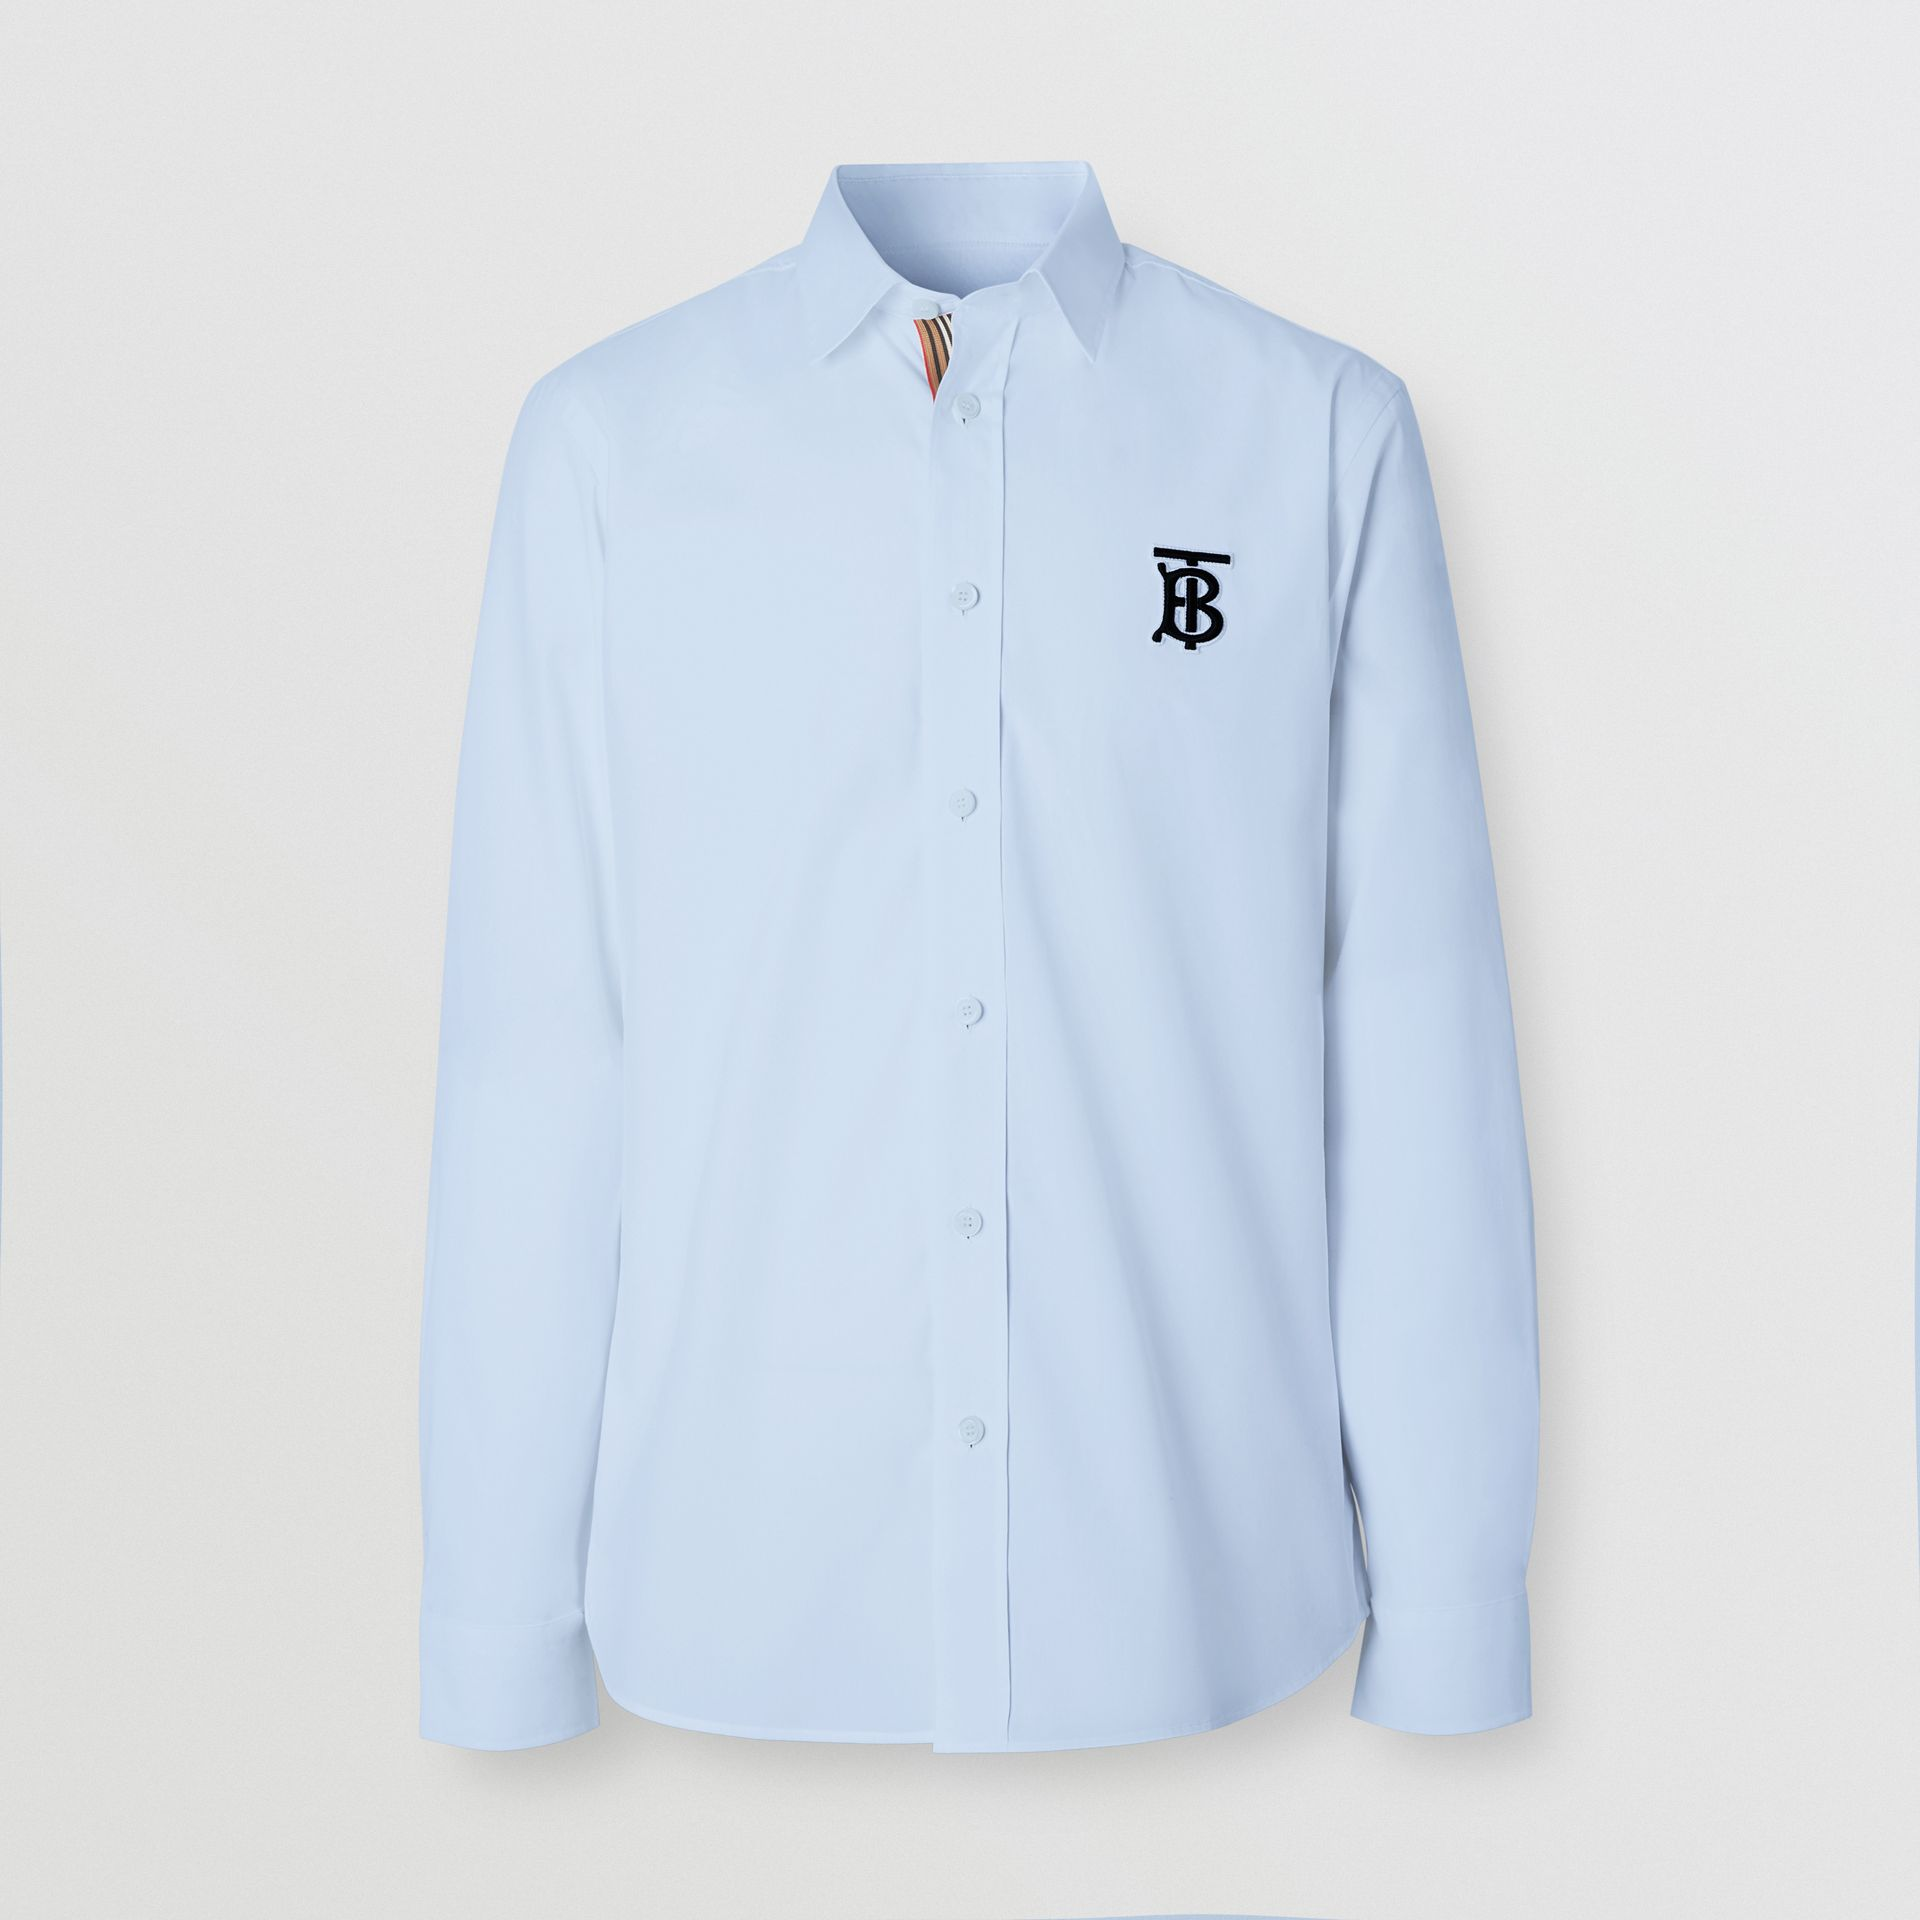 Embroidered Motifs Stretch Cotton Poplin Shirt in Pale Blue - Men | Burberry - gallery image 3